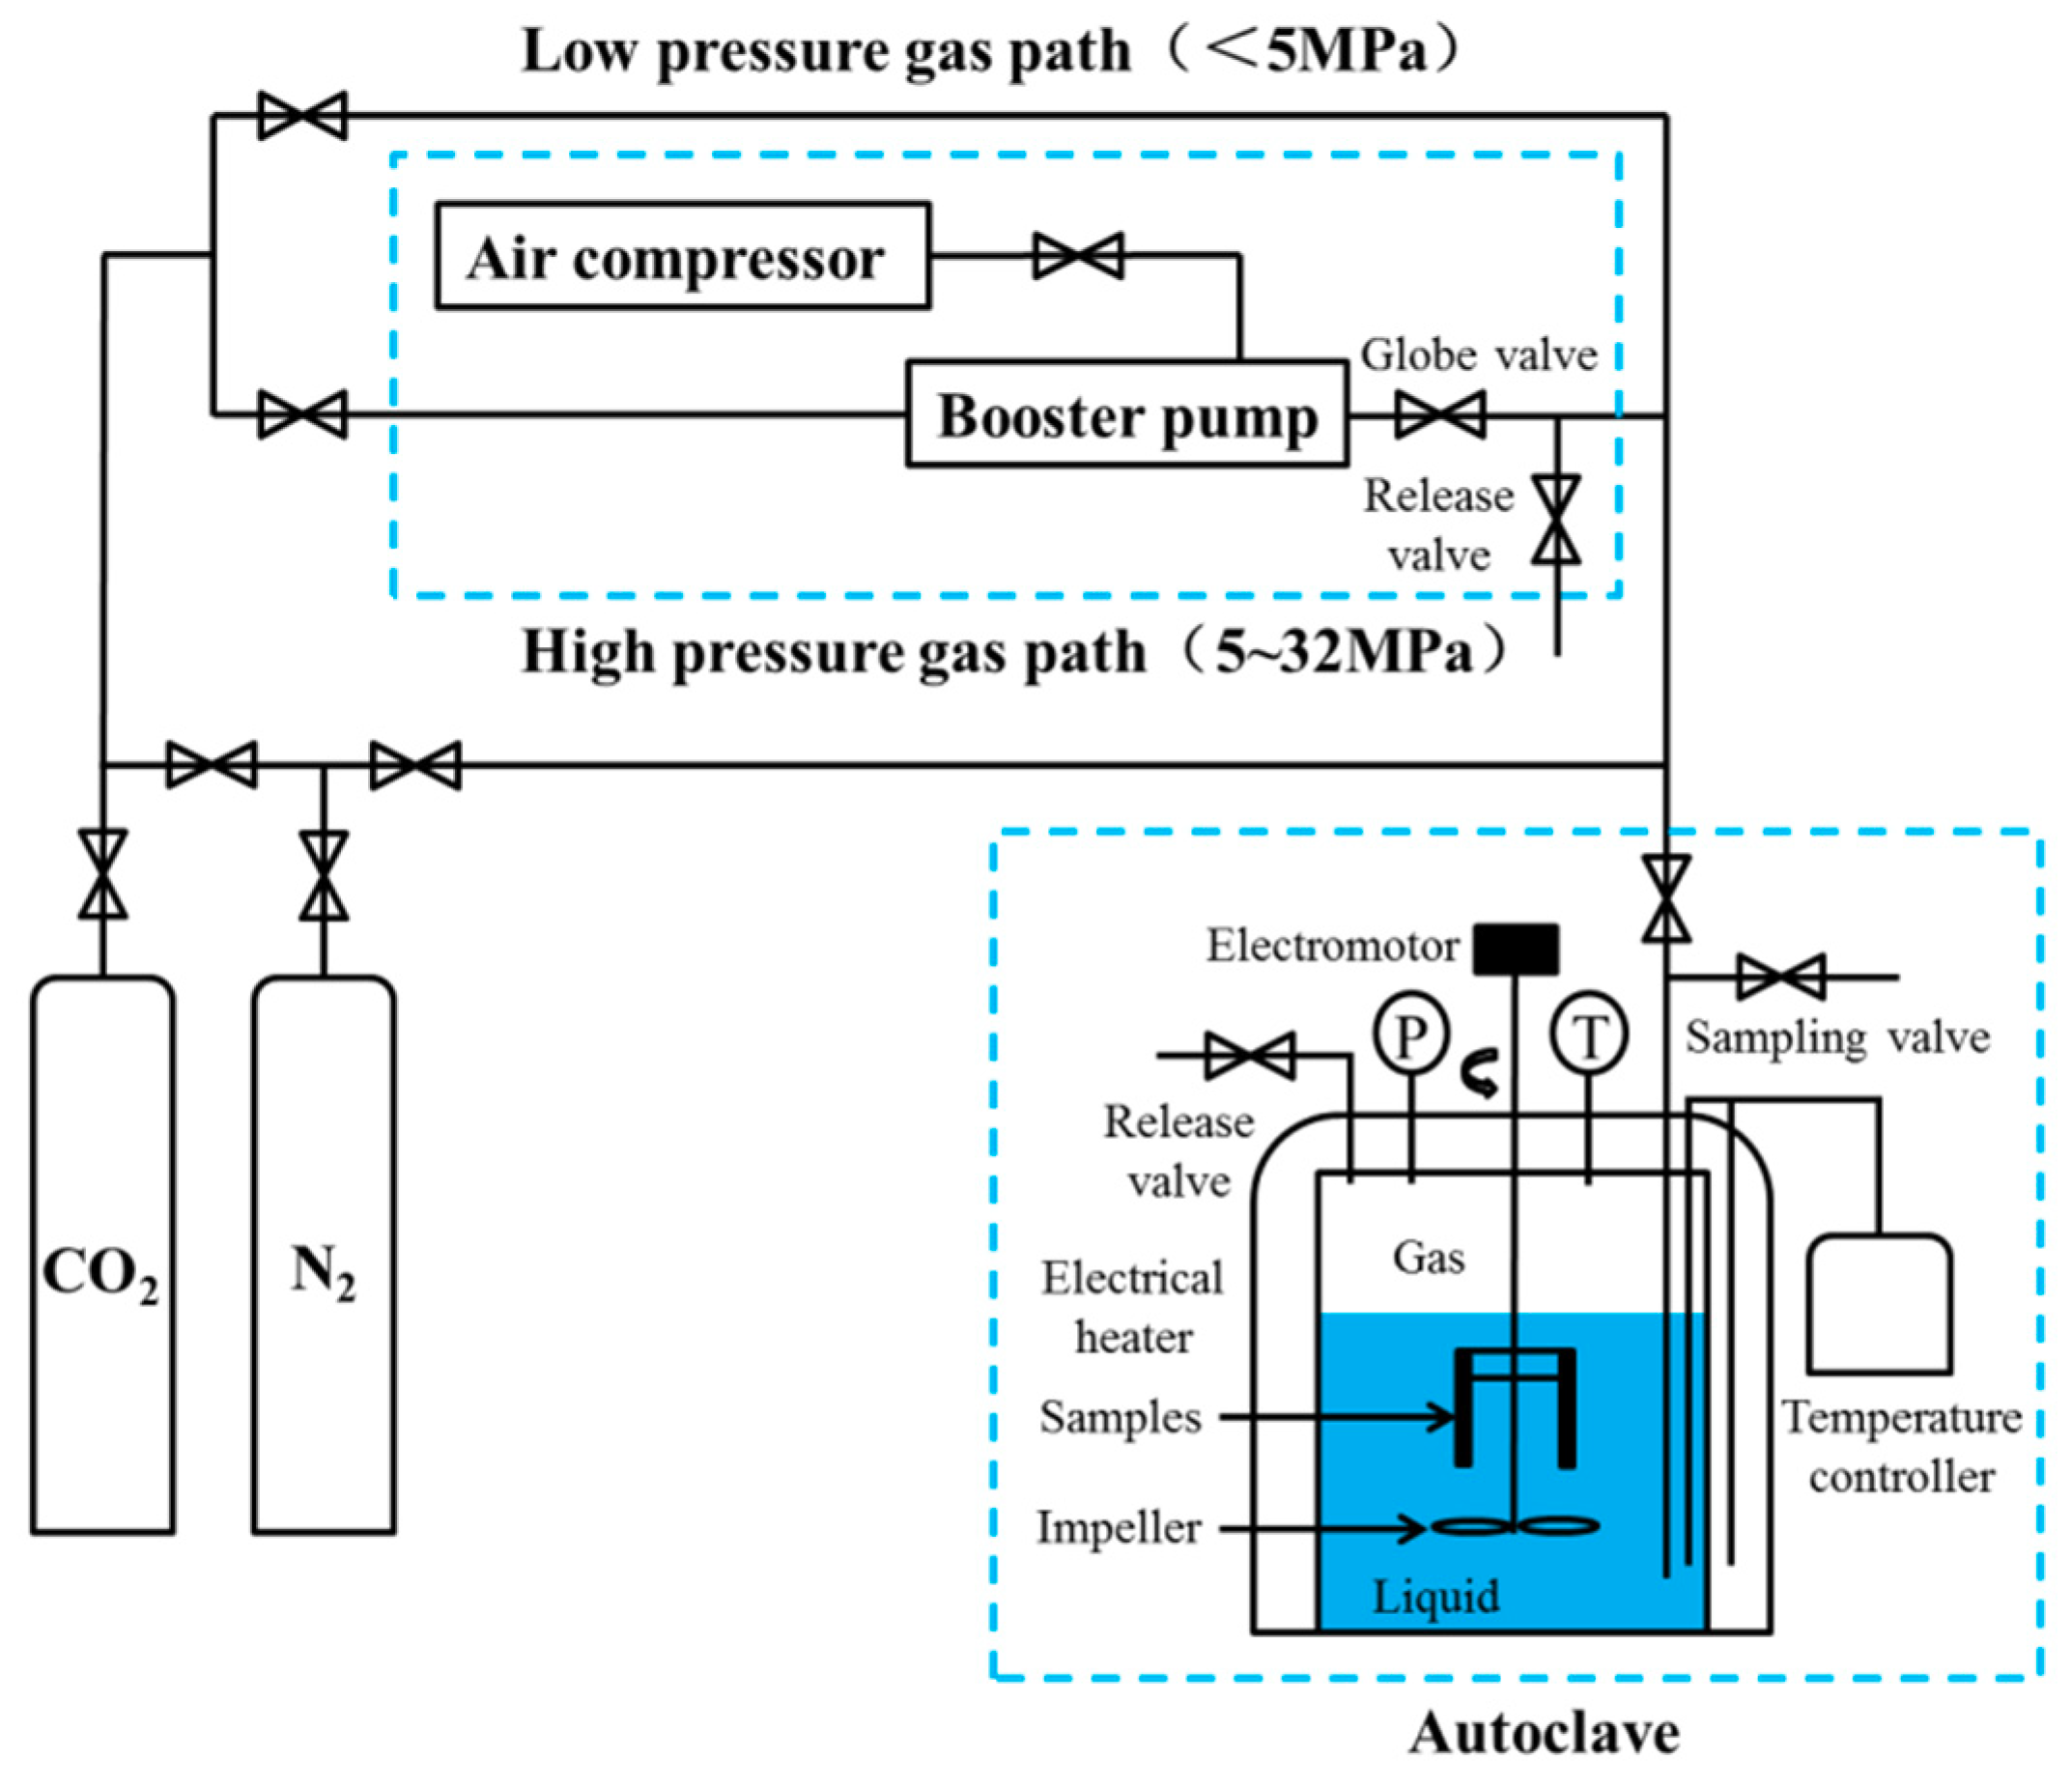 Materials | Free Full-Text | Effect of CO2 Partial Pressure on the